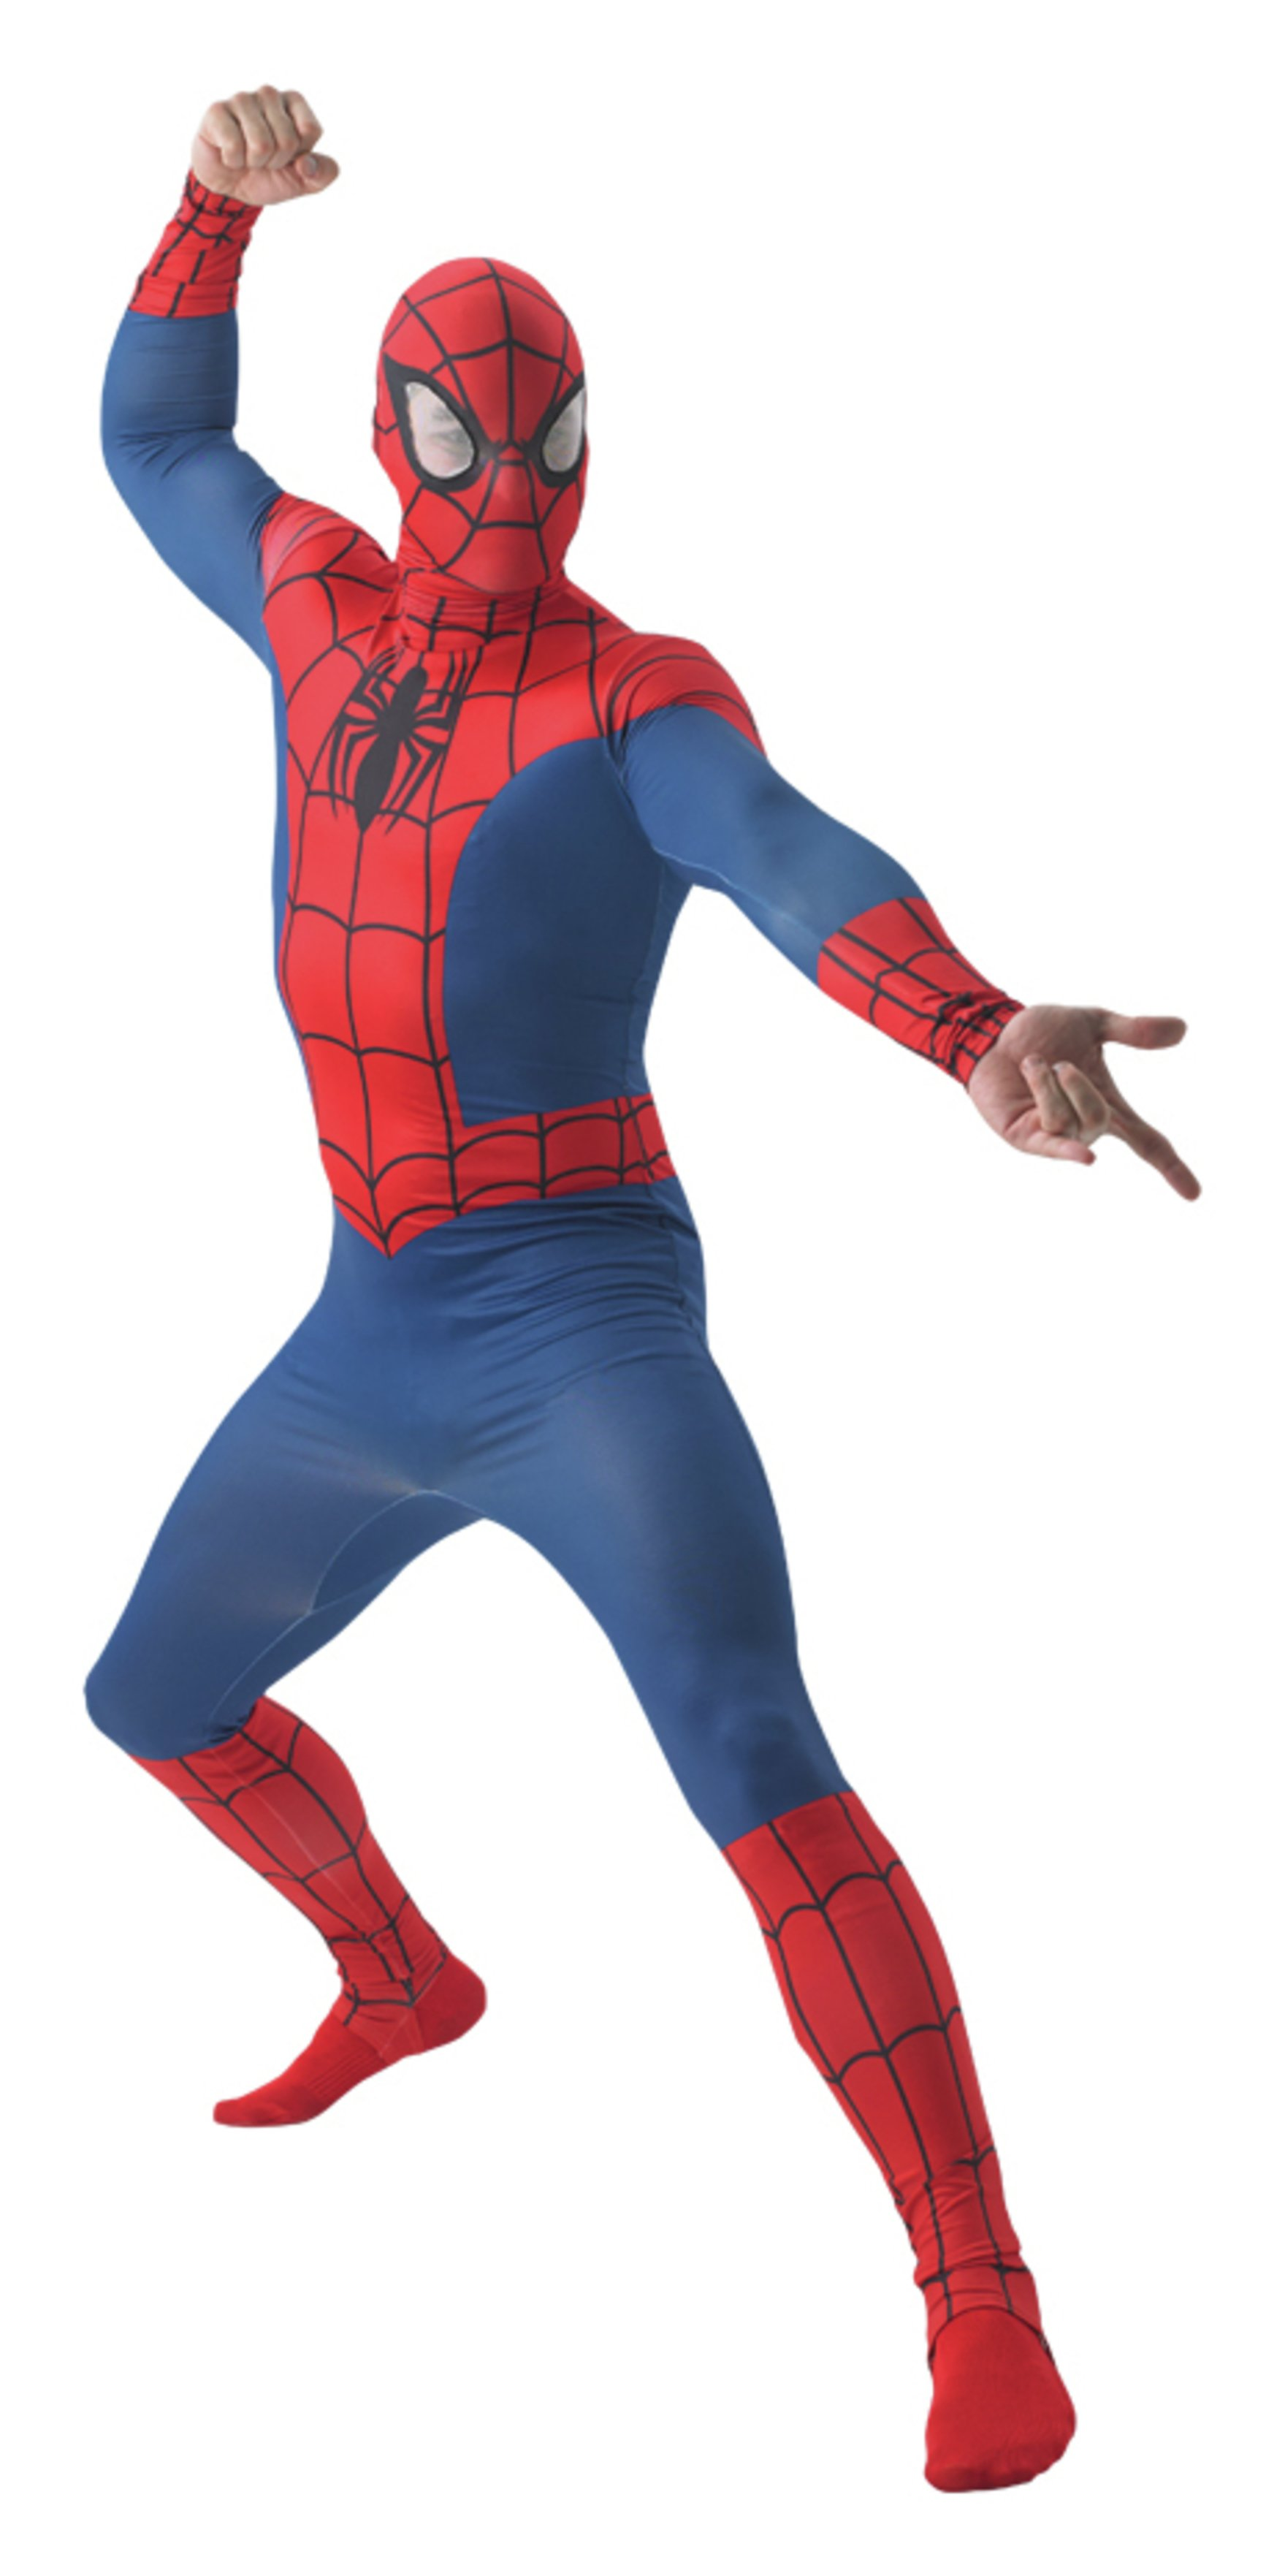 Marvel Spider-Man Fancy Dress Costume - Small/Medium